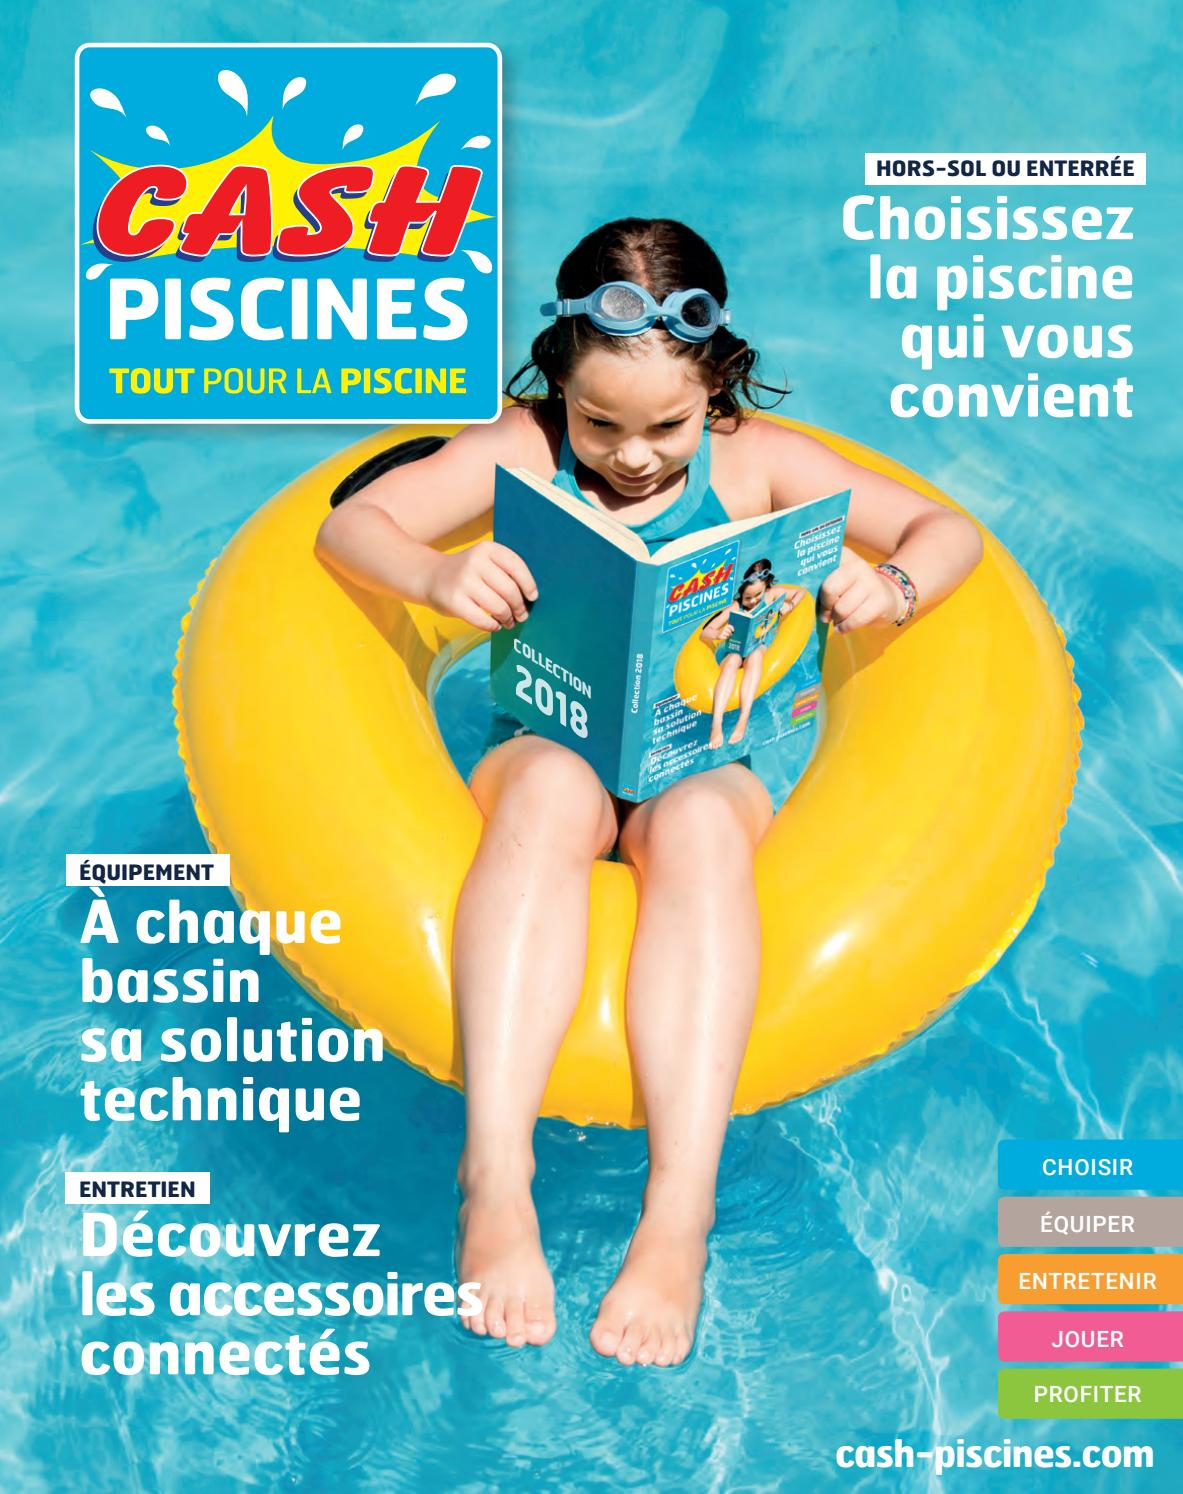 Catalogue Cash Piscine 2018 By Octave Octave - Issuu serapportantà Cash Piscine Venelles